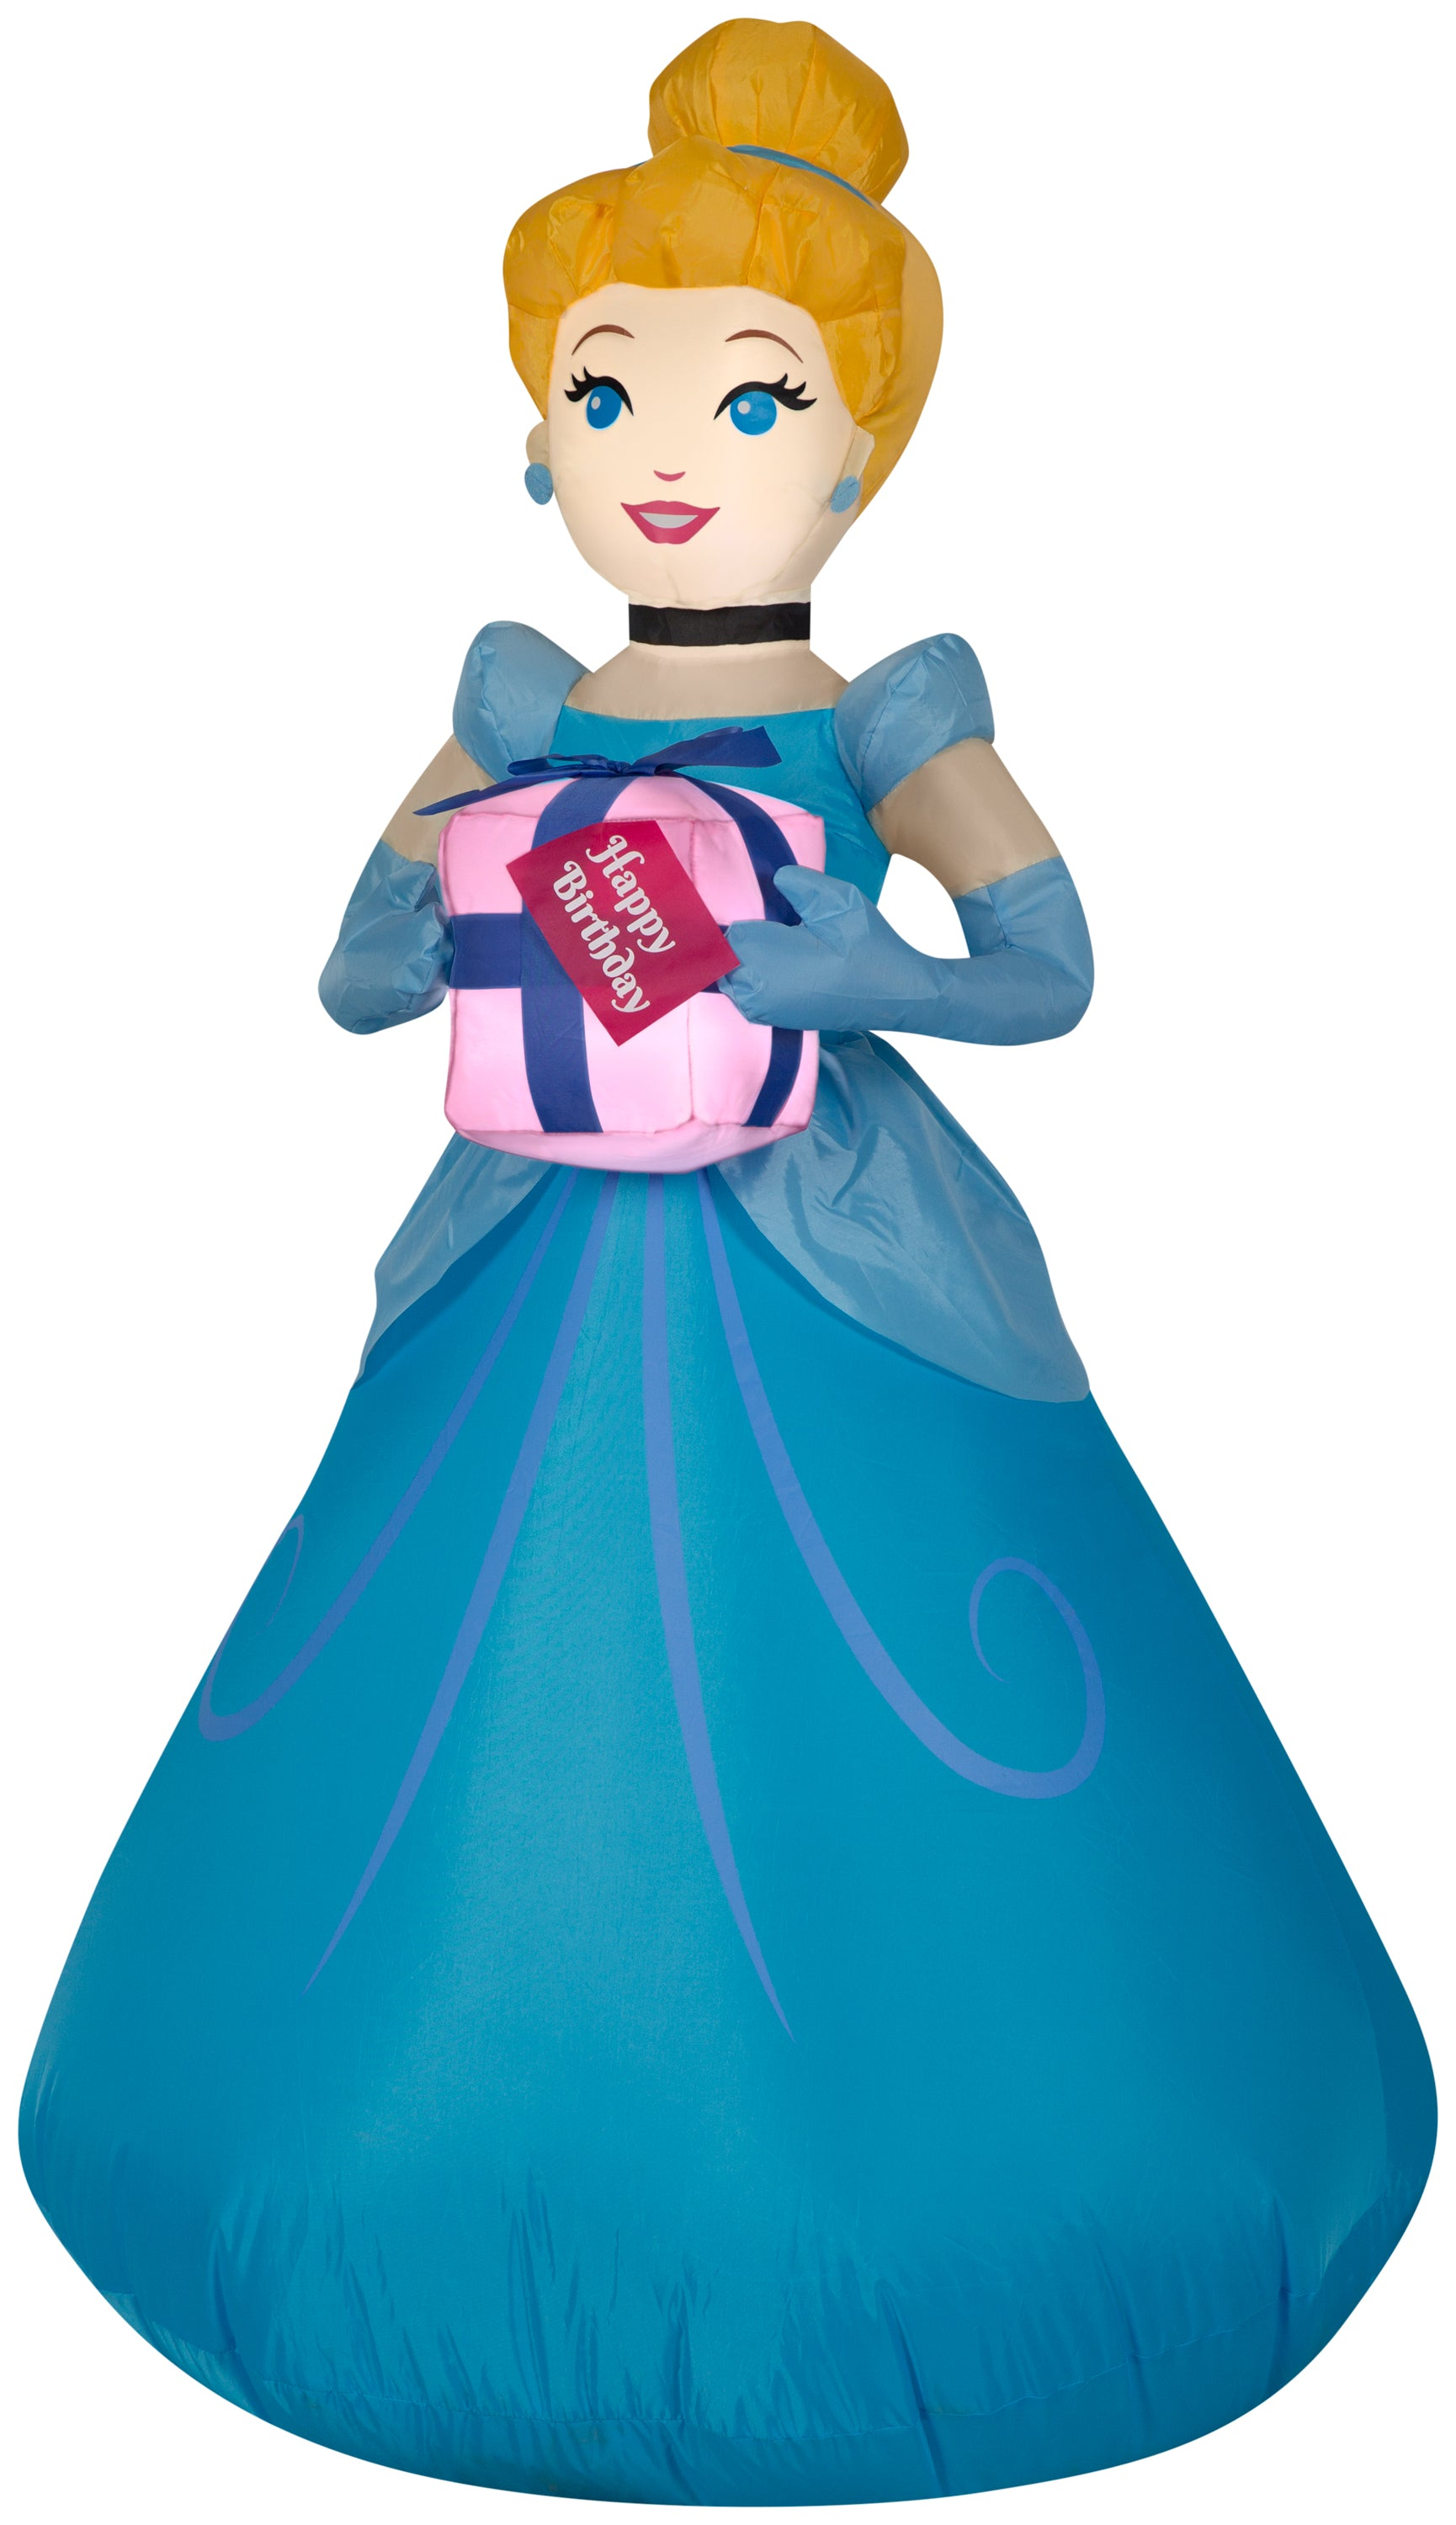 Gemmy Airblown Inflatable Birthday Party Cinderella with Present, 3.5 ft Tall, blue